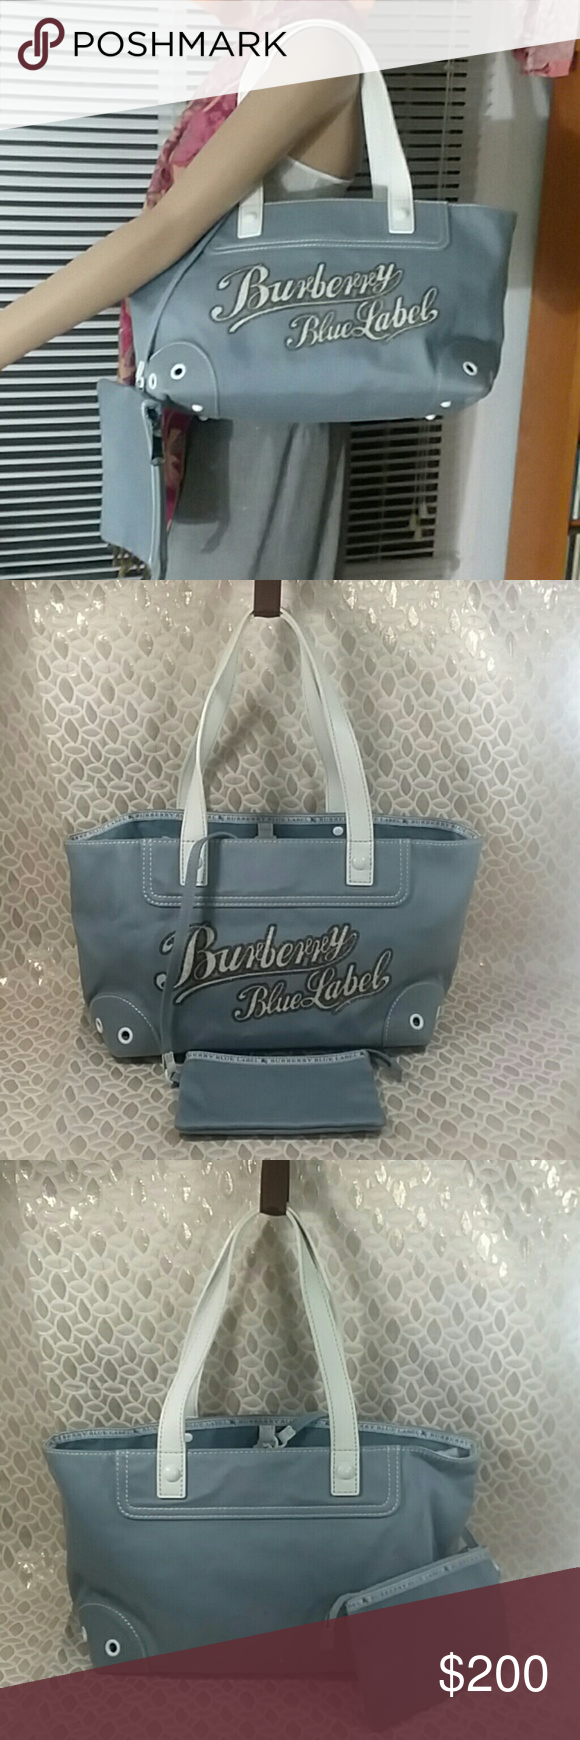 6aace7395c66 Authentic Burberry Blue Label Canvas Tote Bag. Canvas had some stains.  Inside linen and handles are good. The Burberry signature are on the canvas